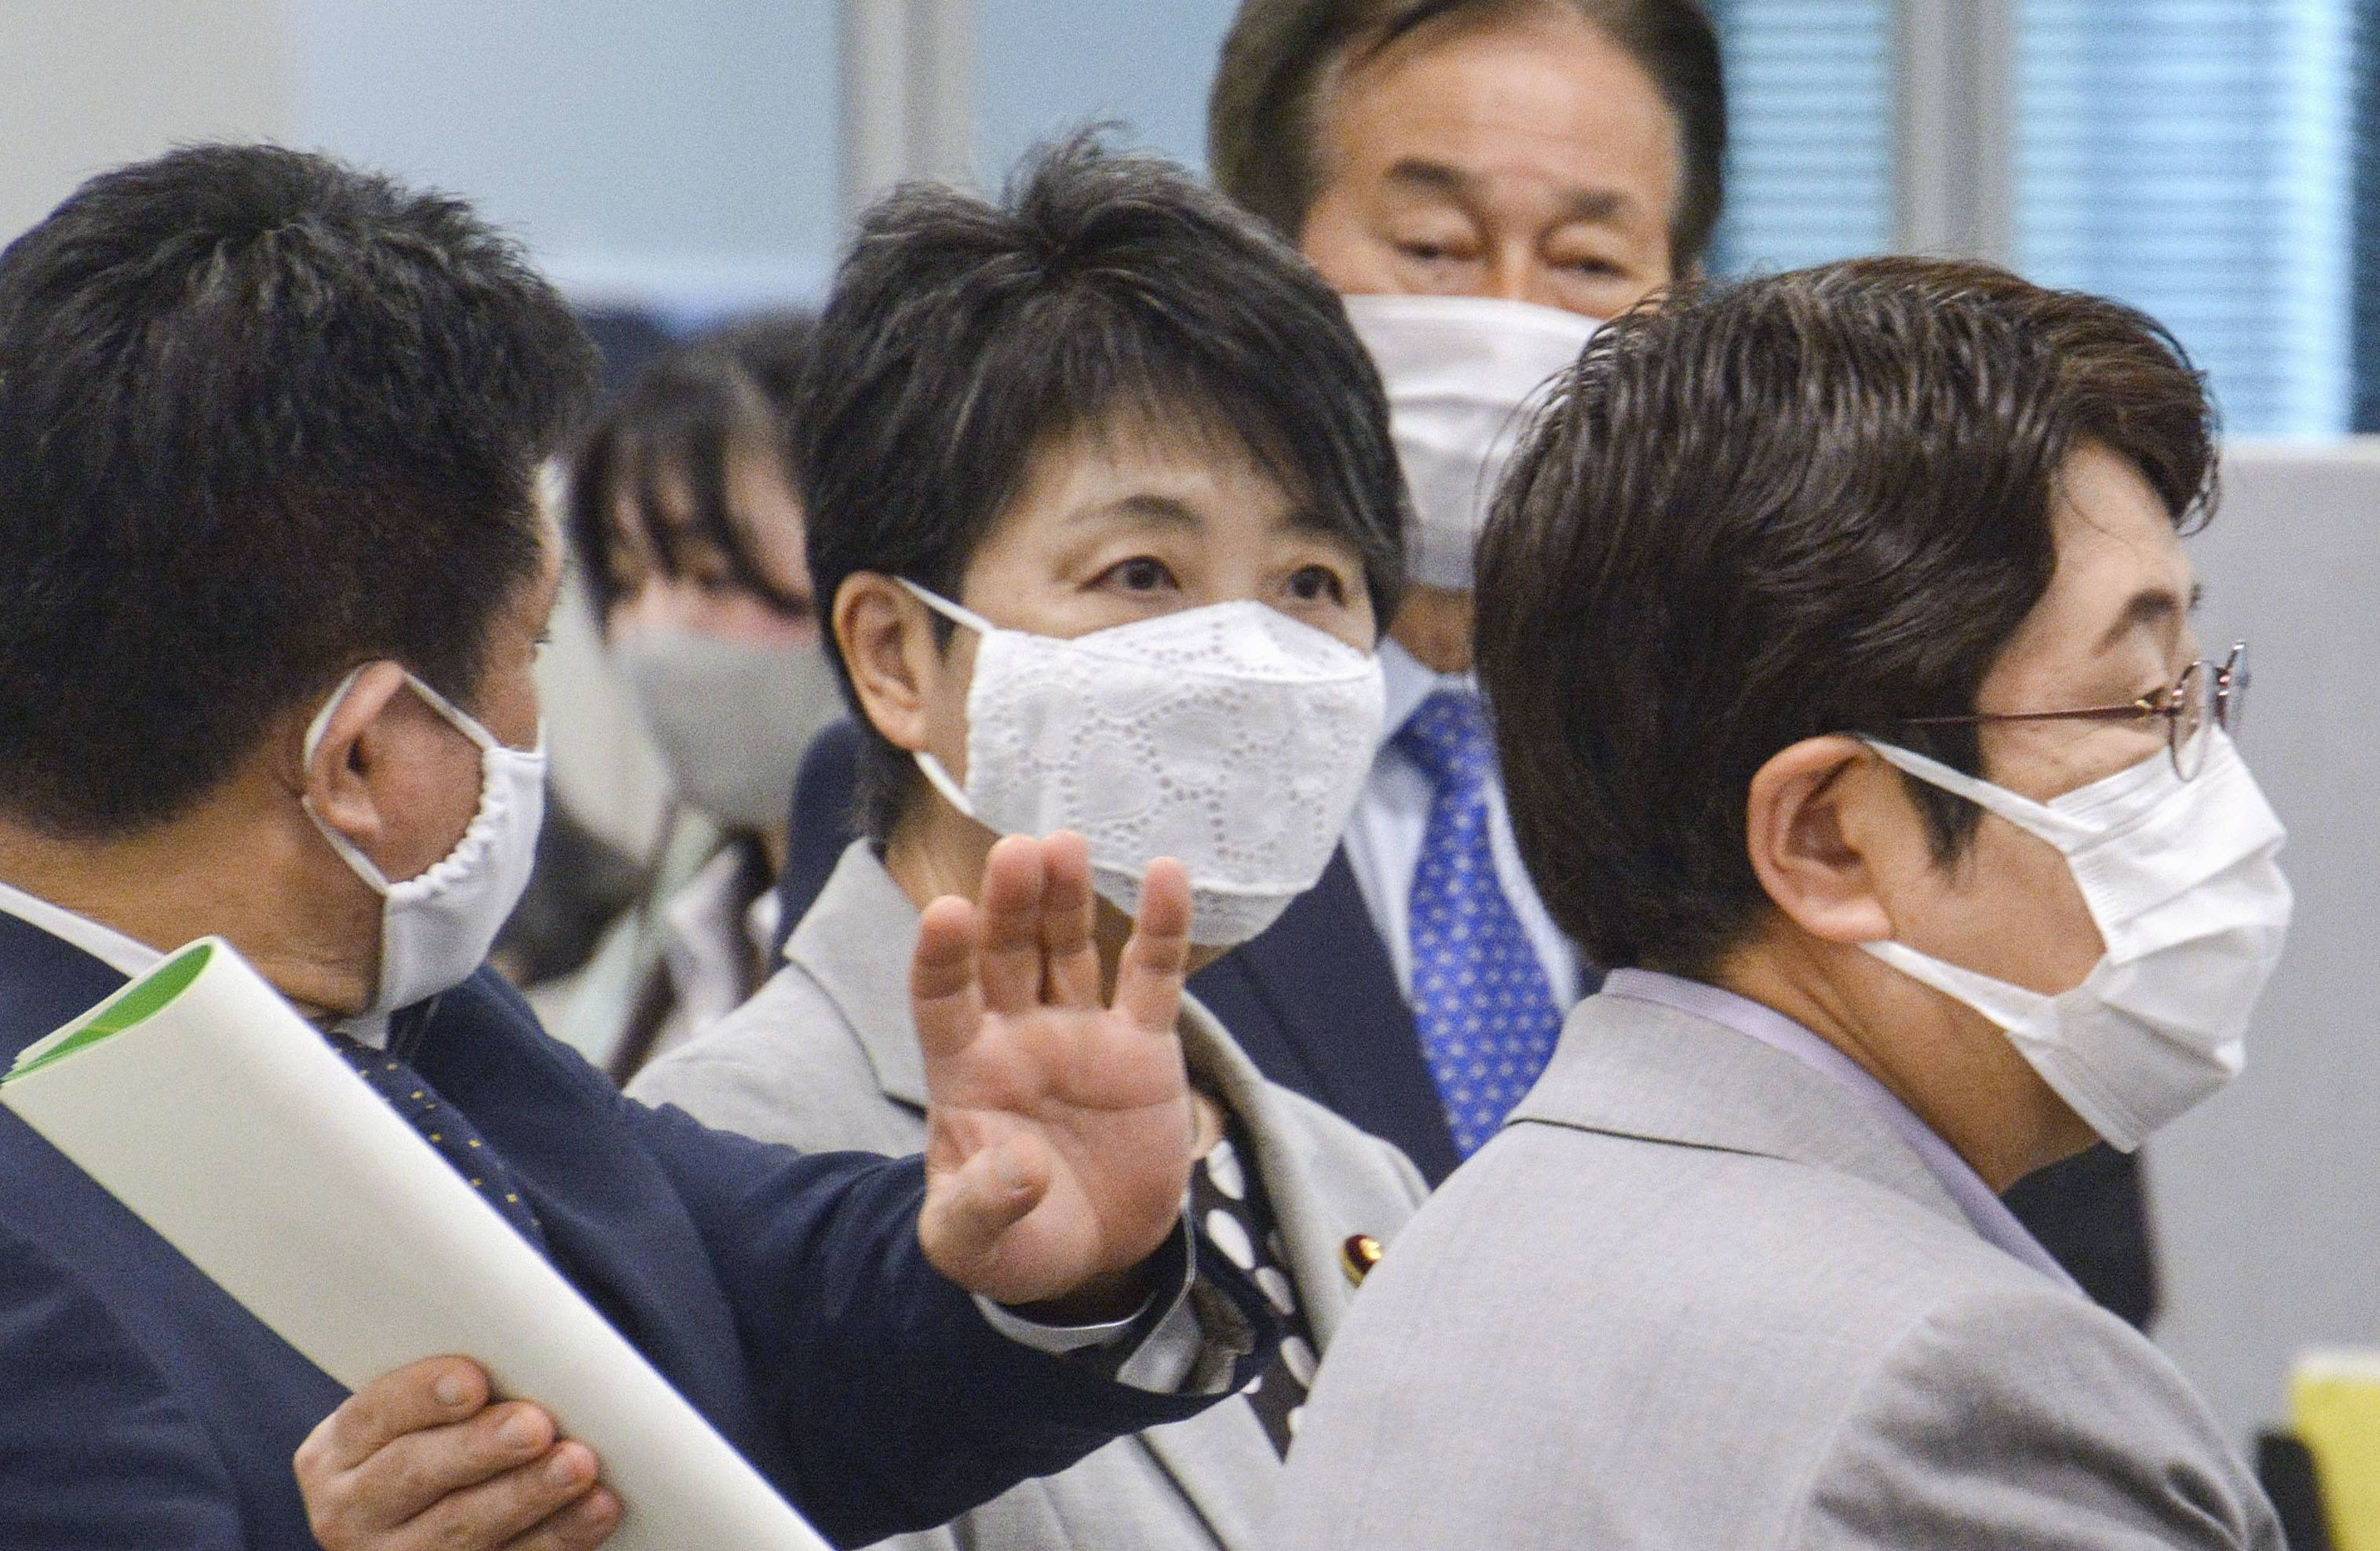 Justice Minister Yoko Kamikawa inspects on Oct. 7 the Foreign Residents Support Center in Tokyo, which opened last year to provide legal and other services for non-Japanese residents as part of her efforts to revise practices under the ministry's jurisdiction. | KYODO